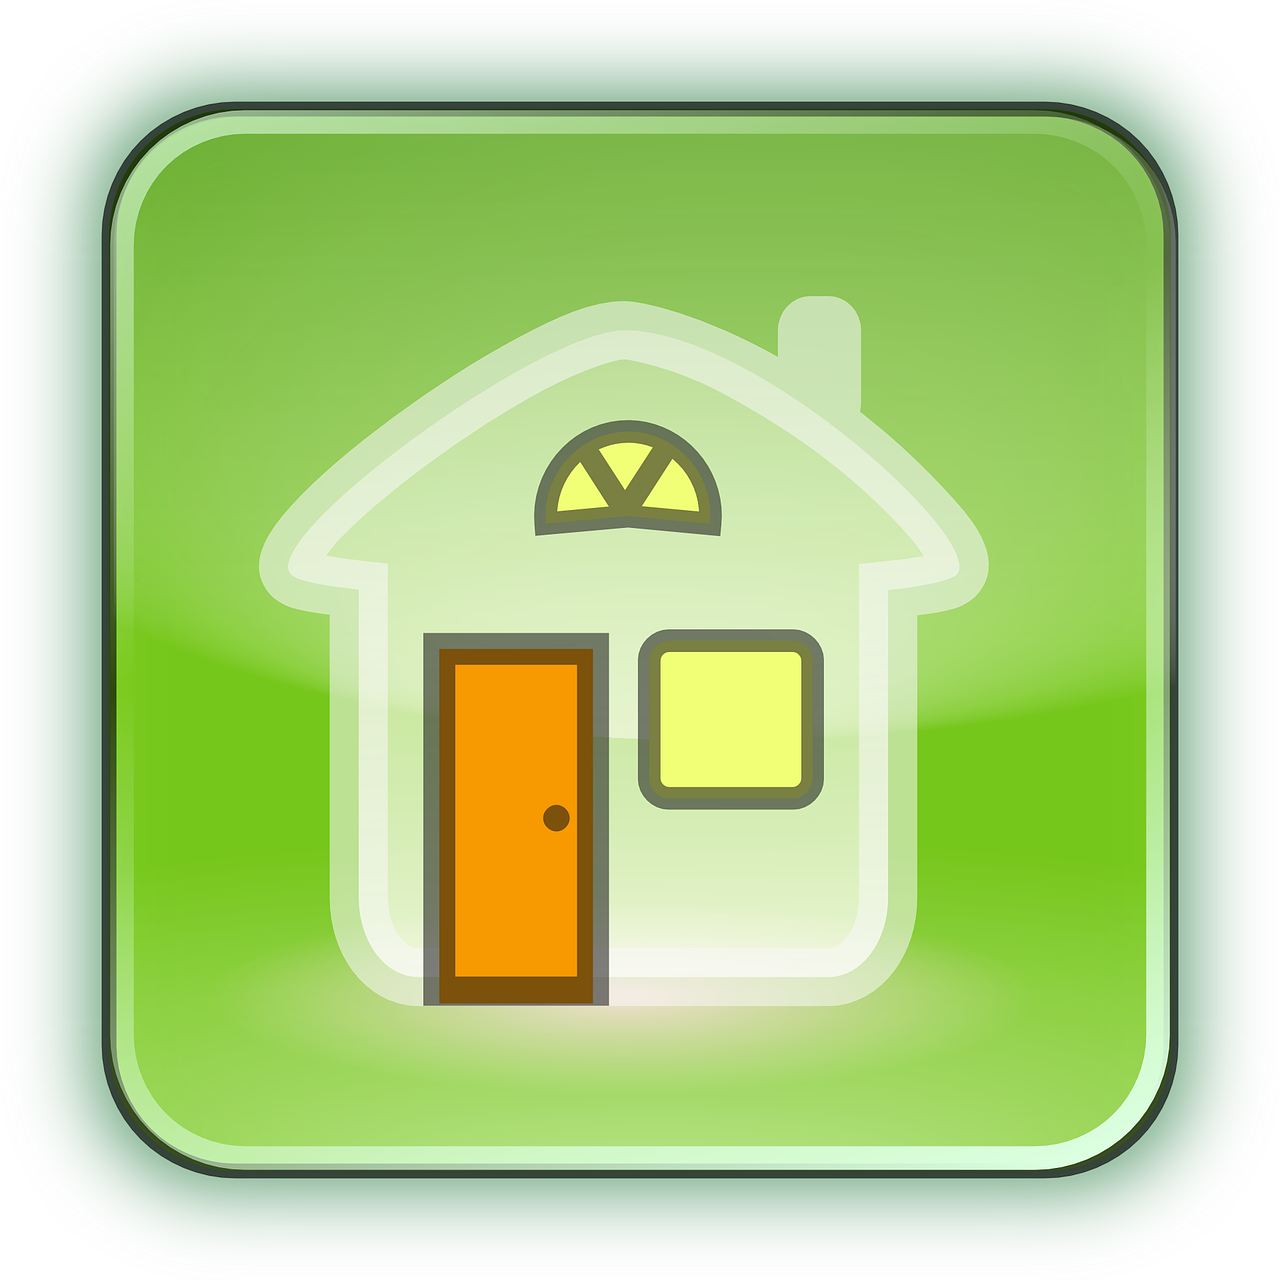 home house icon free vector graphic on pixabay https creativecommons org licenses publicdomain